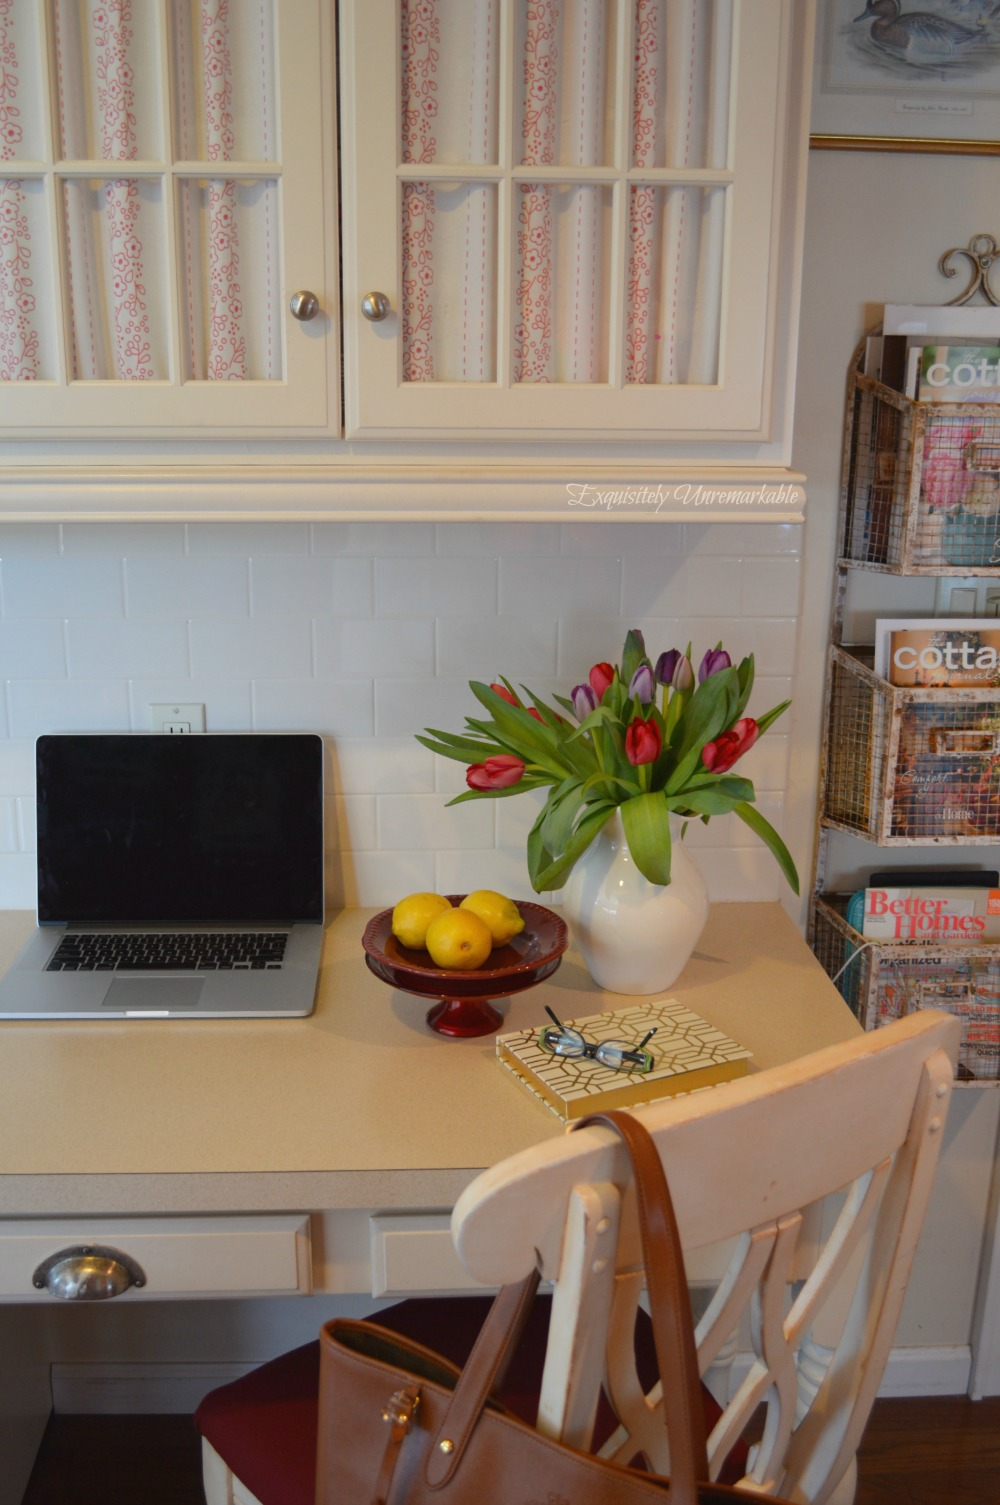 Kitchen Desk Area How To Cover Glass Cabinet Doors With Fabric Exquisitely Unremarkable